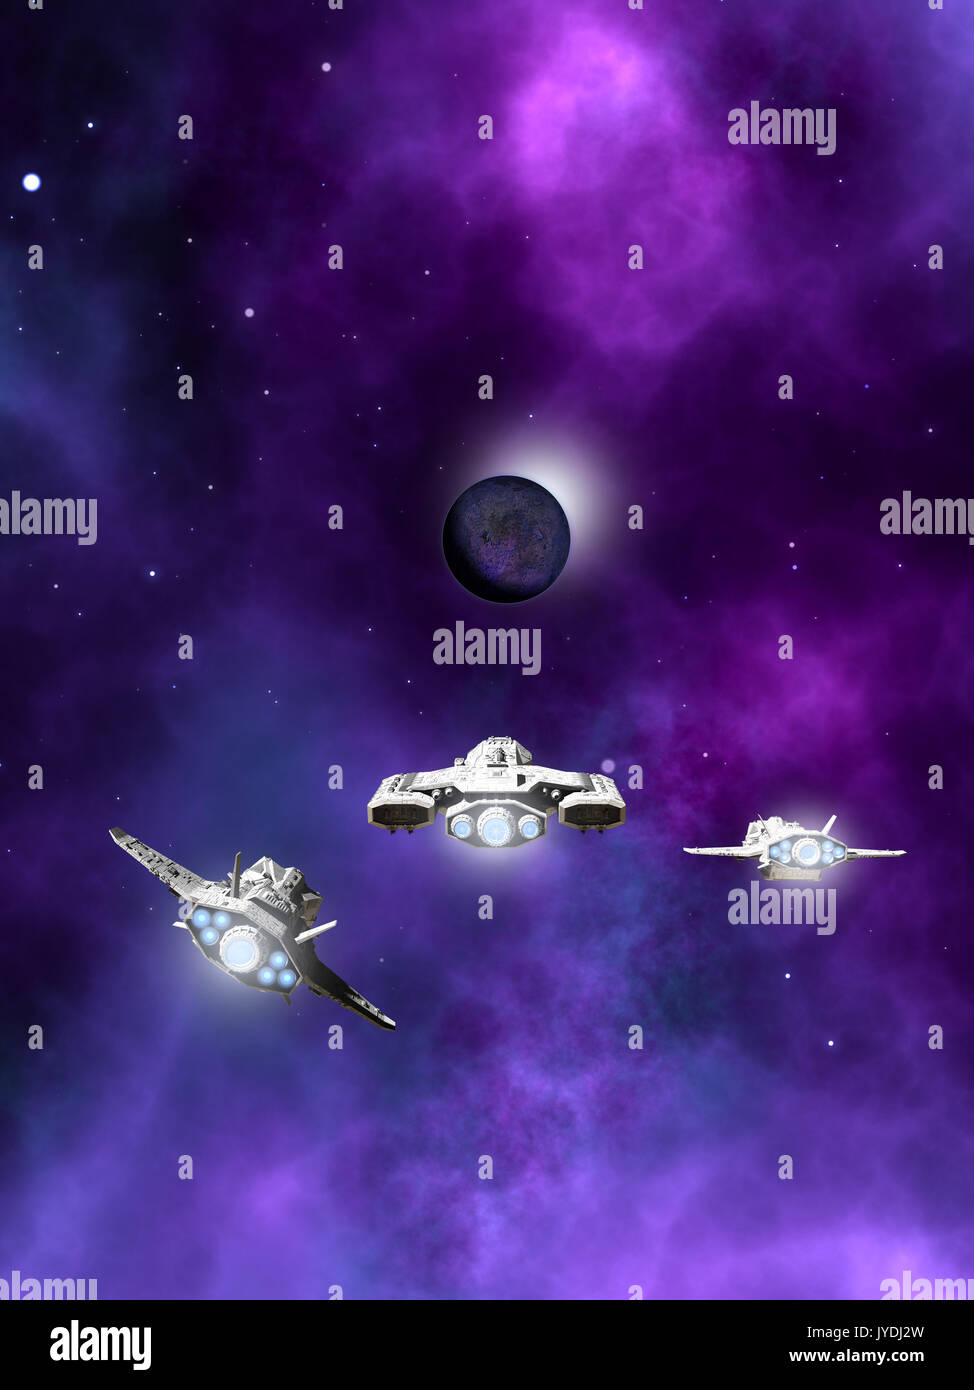 Fleet of Spaceships Approaching a Planetary Nebula - Stock Image